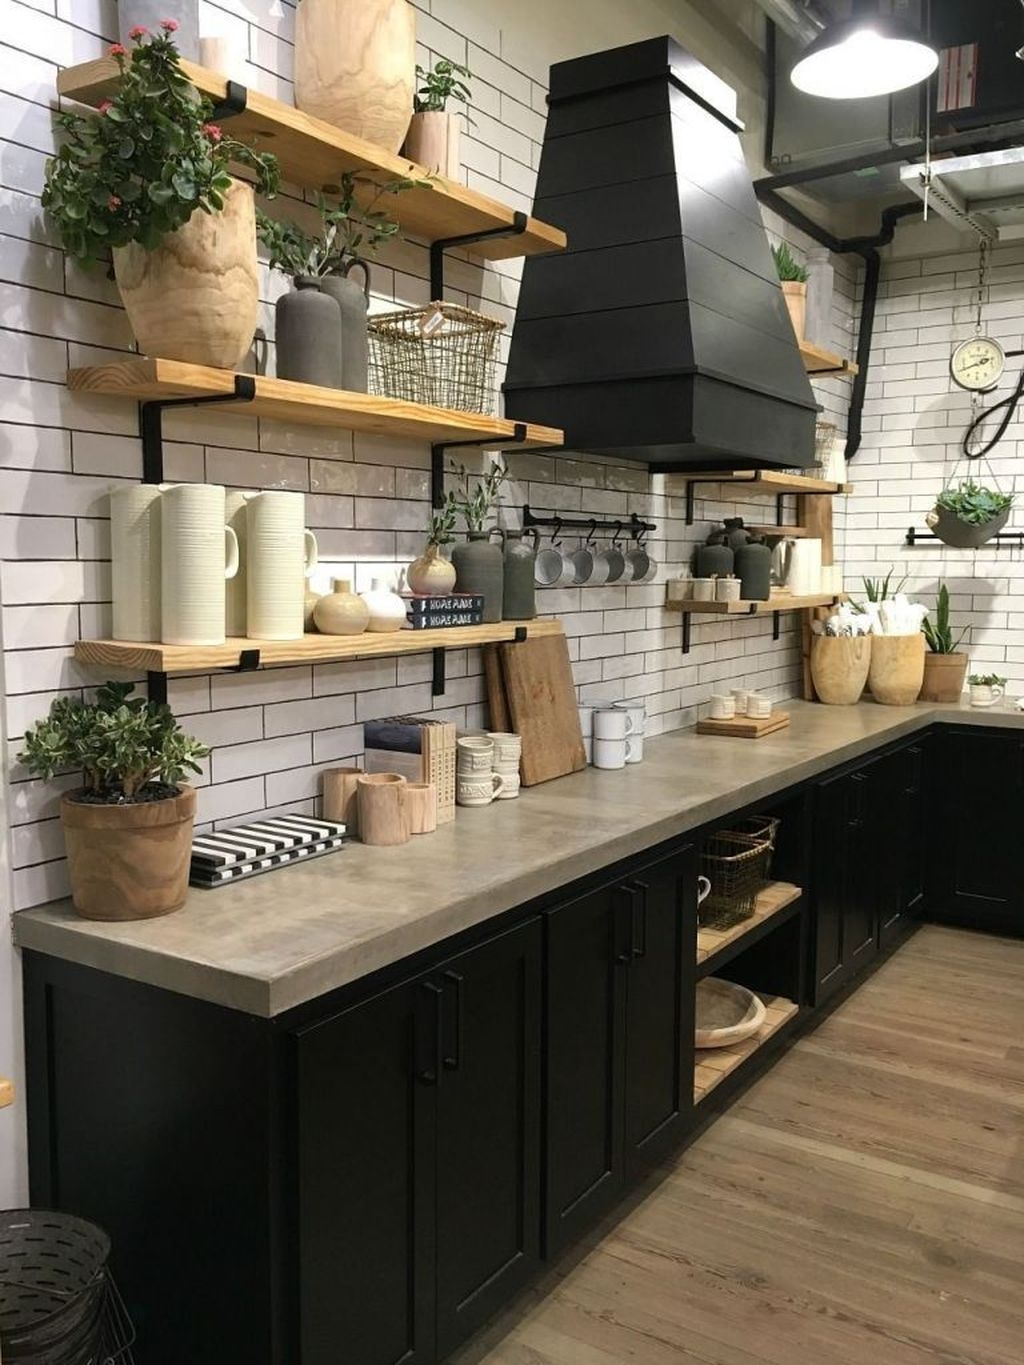 Incredible Black And White Kitchen Ideas To Try08